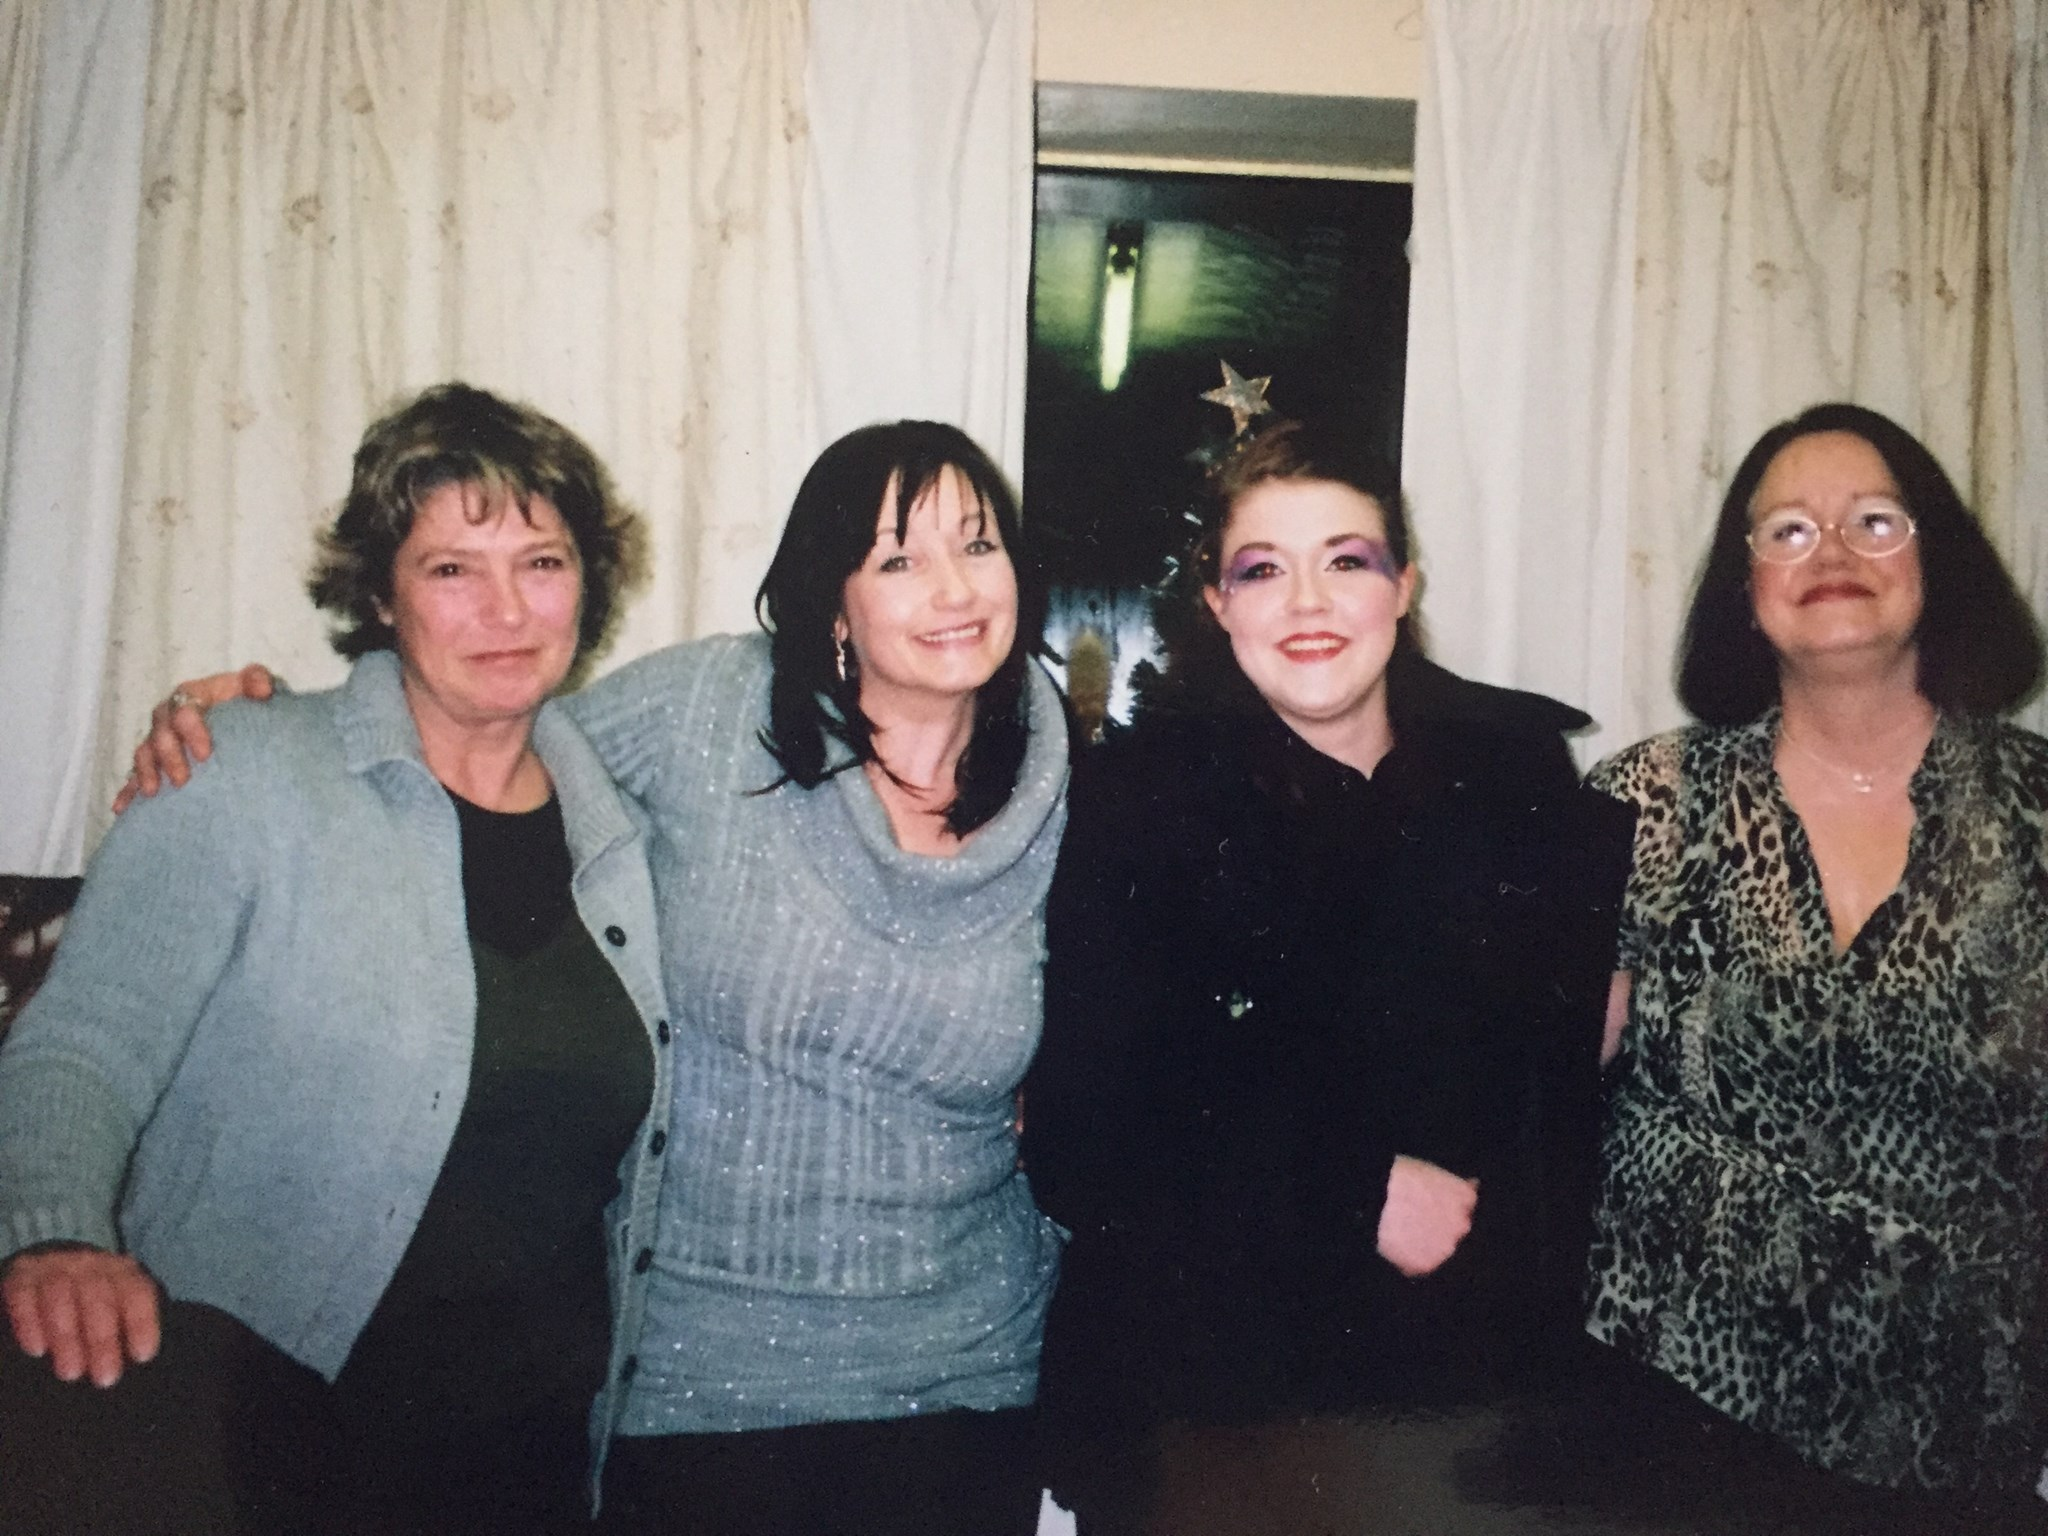 Auntie carol ?? With sisters and niece